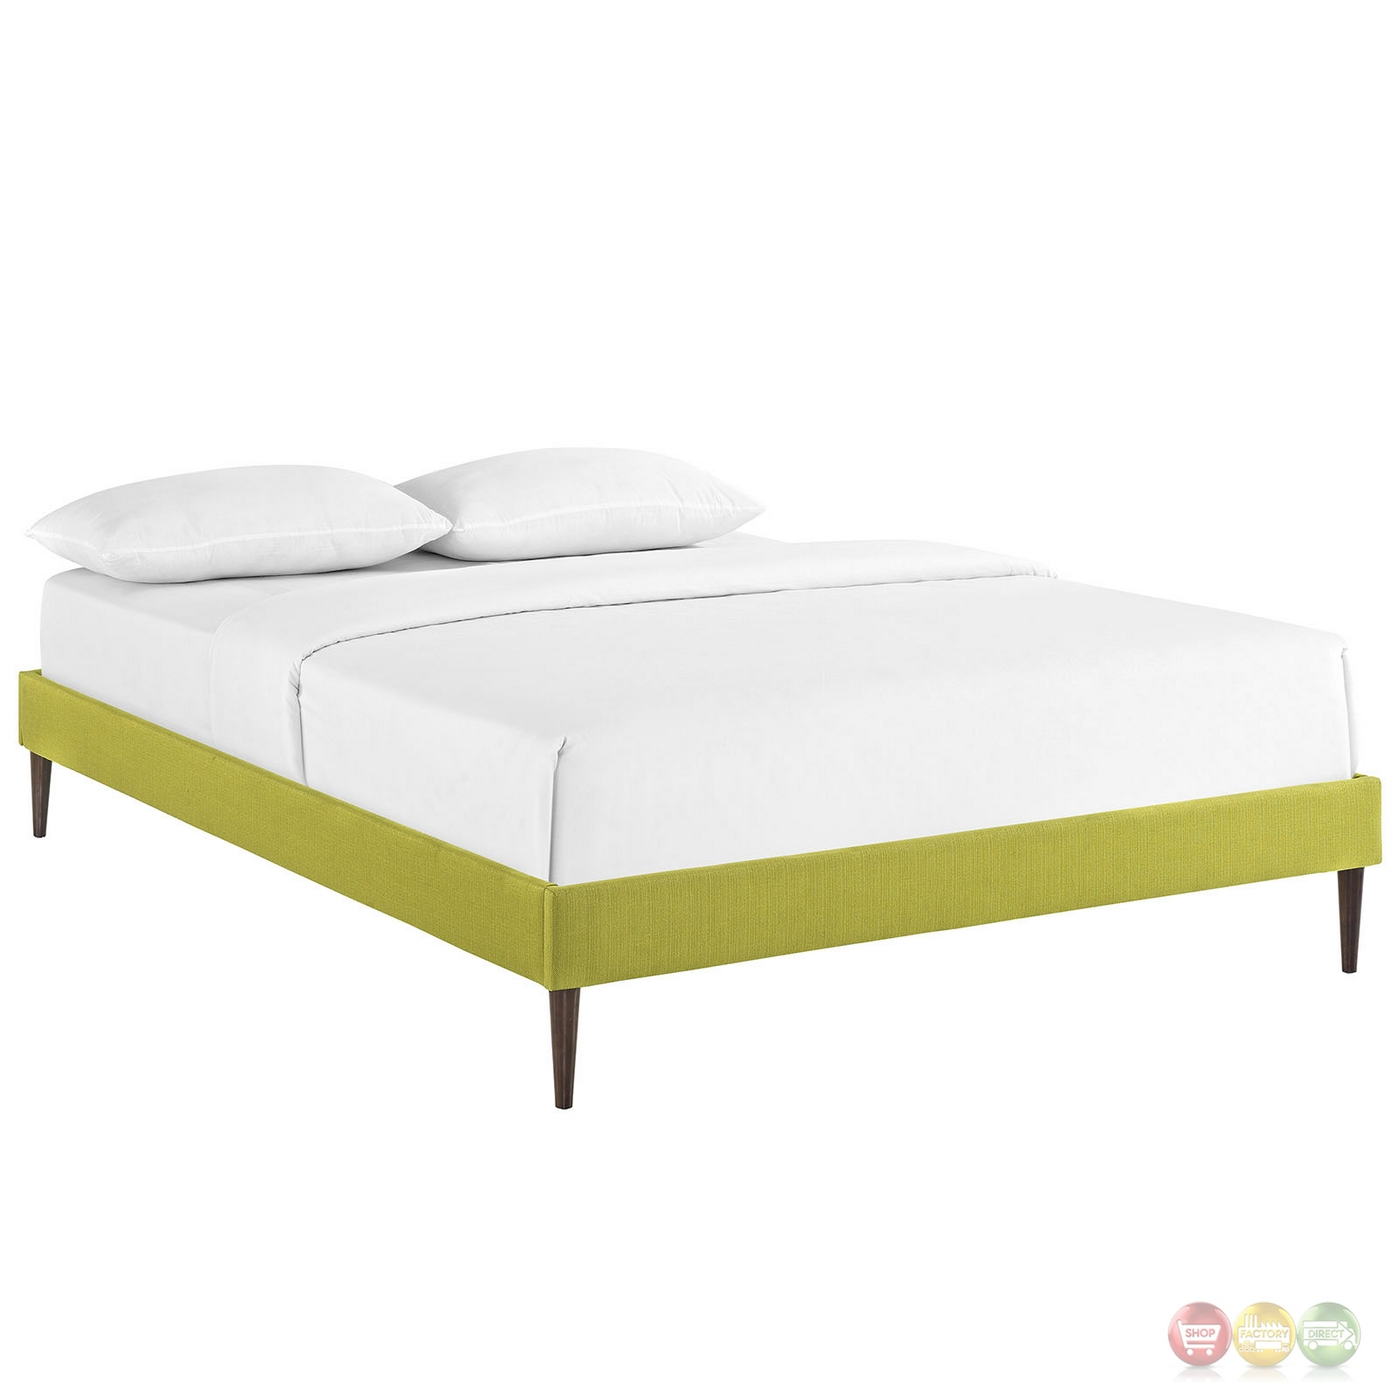 Sherry Upholstered Fabric King Platform Bed Frame Wheatgrass